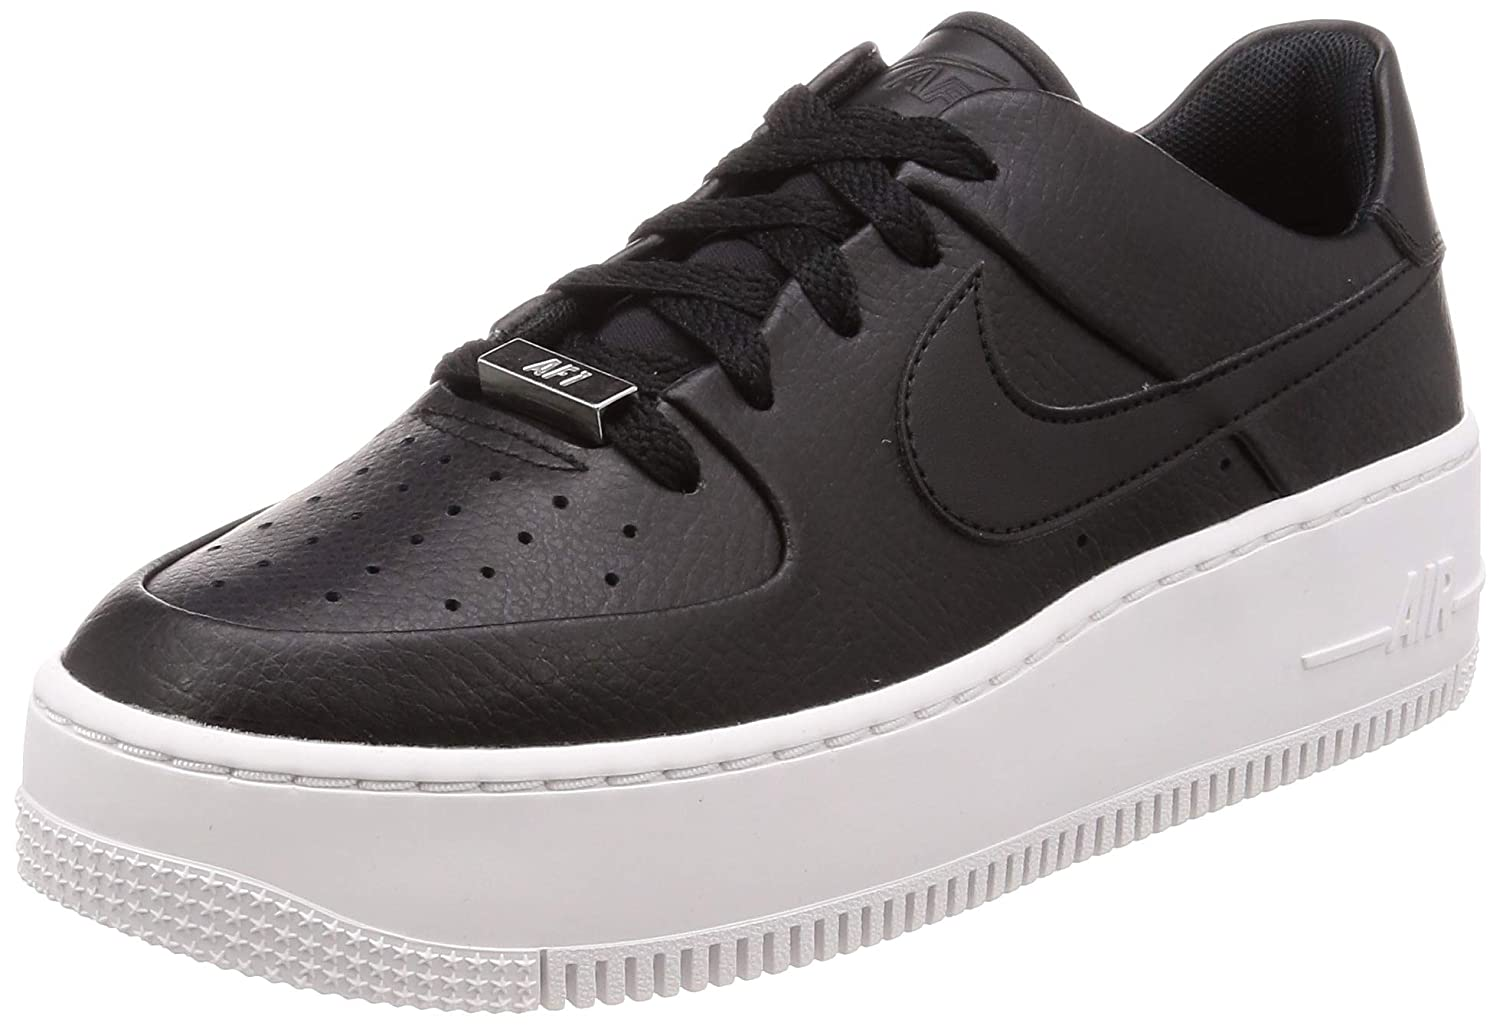 outlet store df280 1df69 Amazon.com | Nike Air Force 1 Sage Low Women's Shoes Black ...